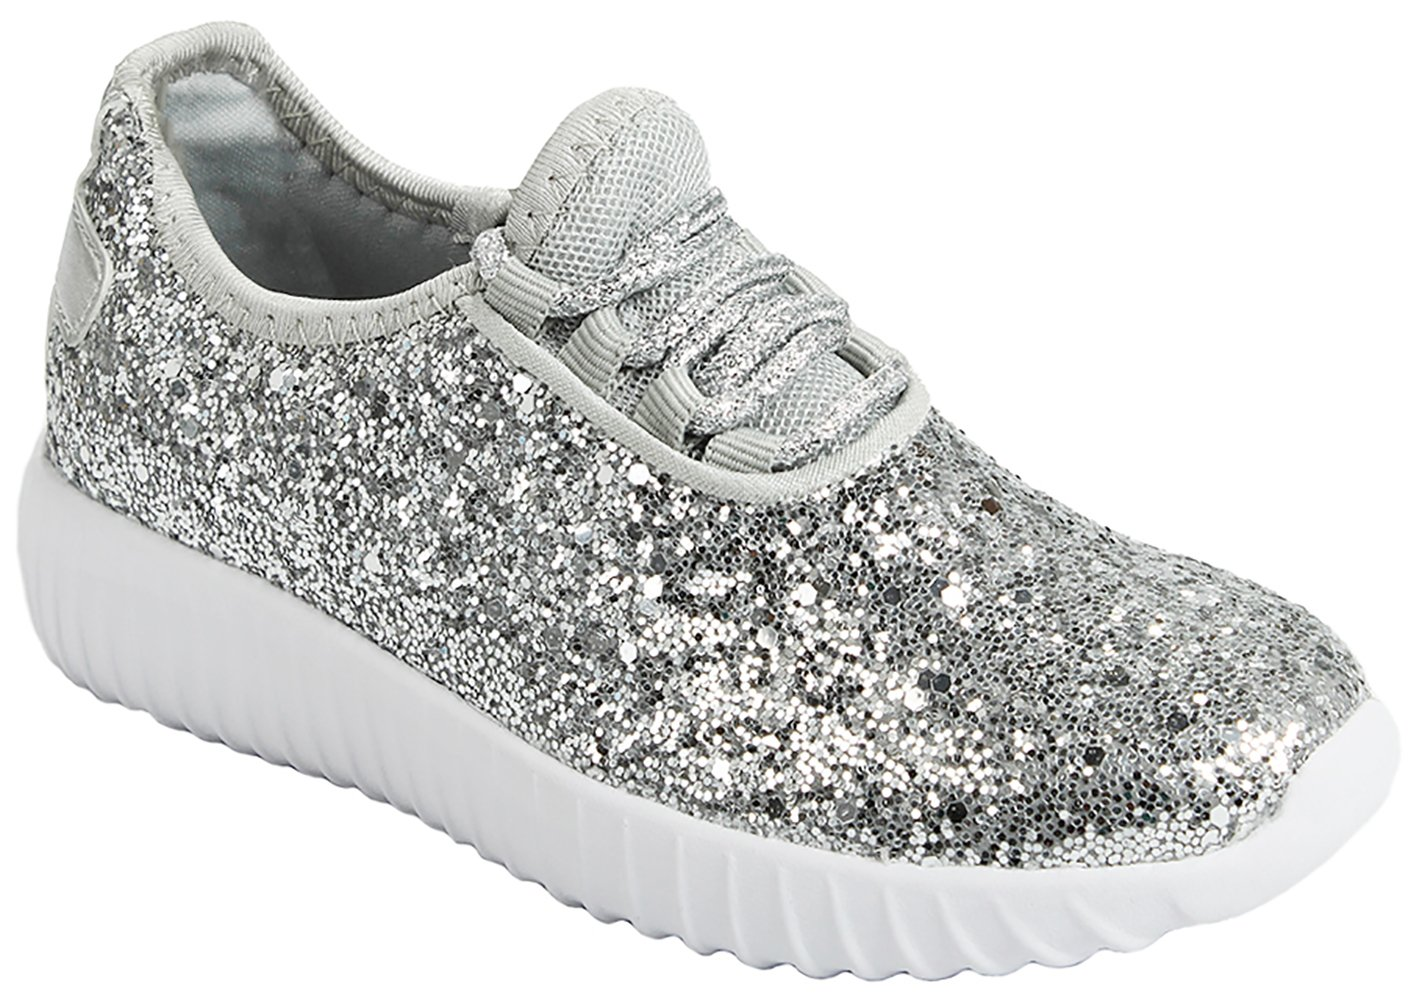 Women Fashion Metallic Sequins Glitter Lace up Light Weight Stylish Sneaker Shoes B076DSW96N 8 B(M) US|Silver